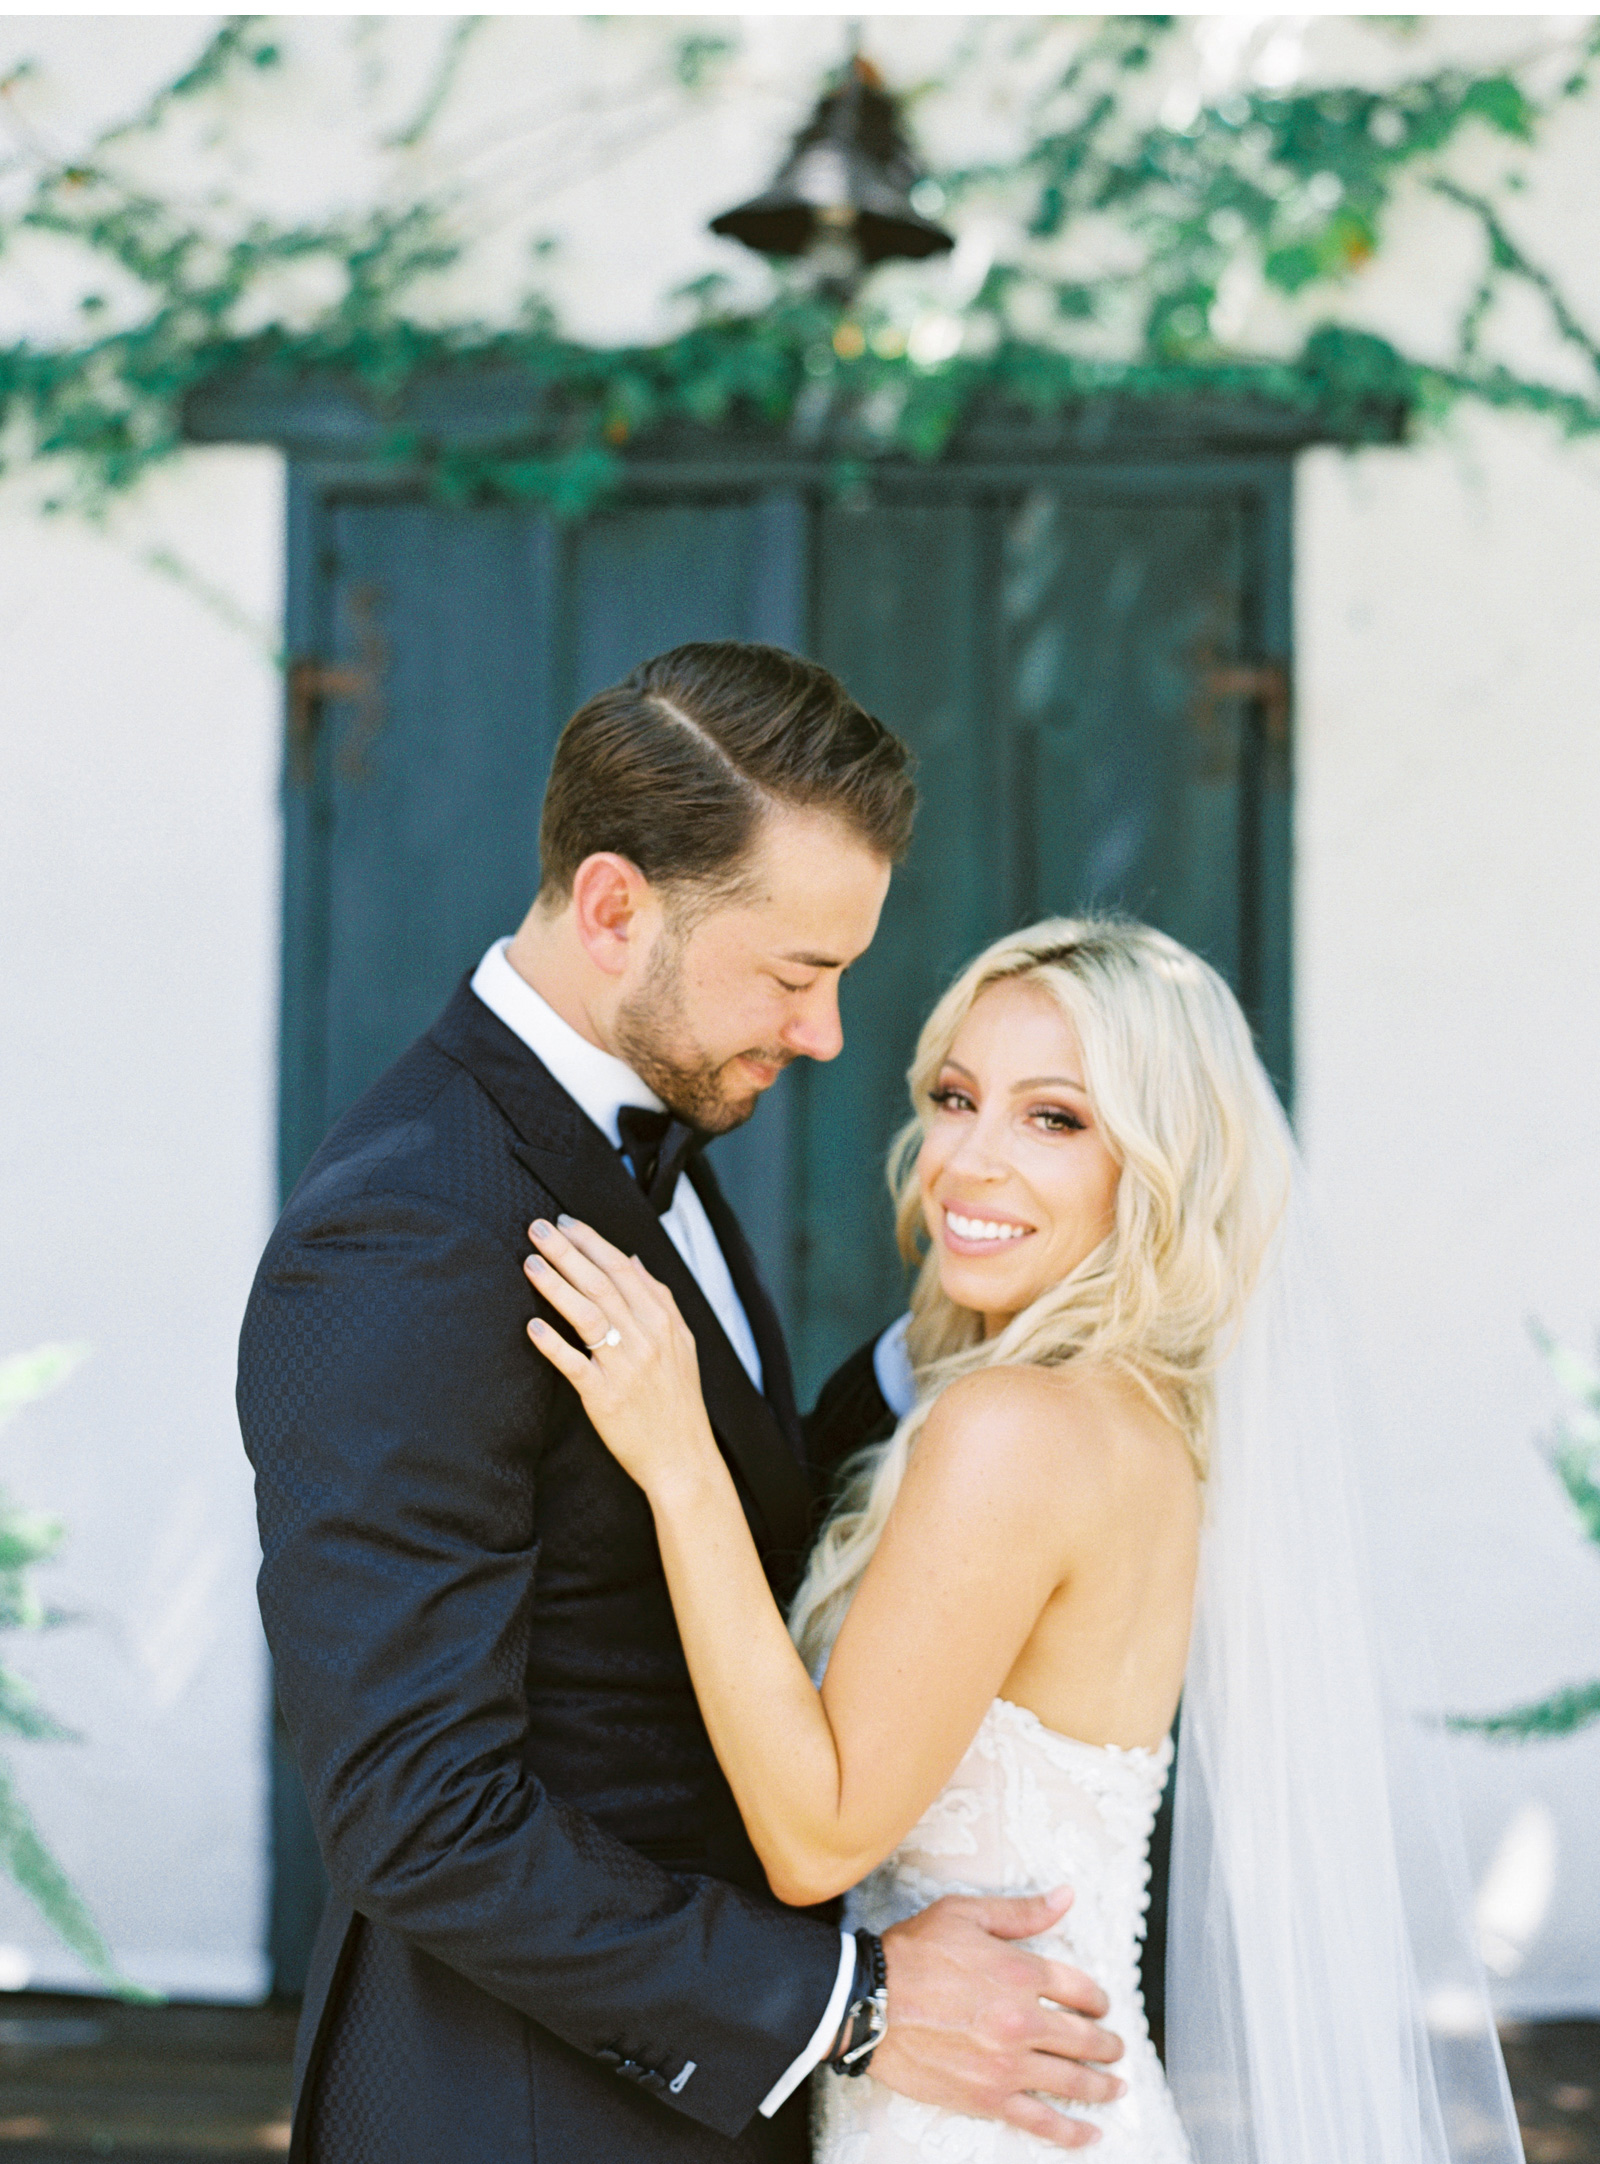 San-Juan-Capistrano-Wedding-Photographer-Southern-California-Wedding-Venues-Malibu-Wedding-Photographer-Natalie-Schutt-Photography_09.jpg